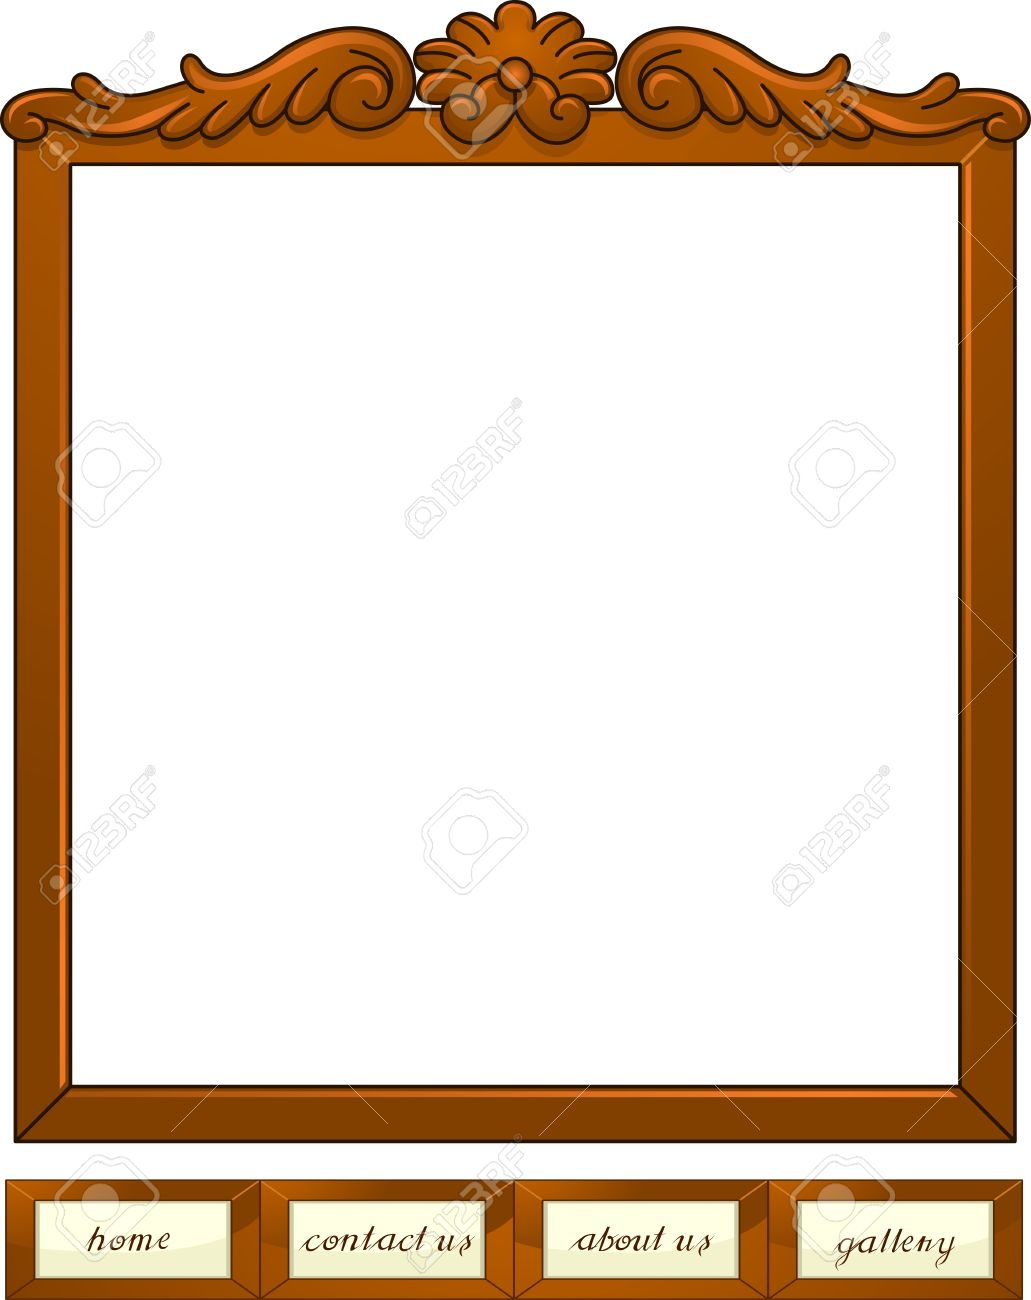 wood frames designs picture frame designs illustration illustration of web buttons with a wooden frame